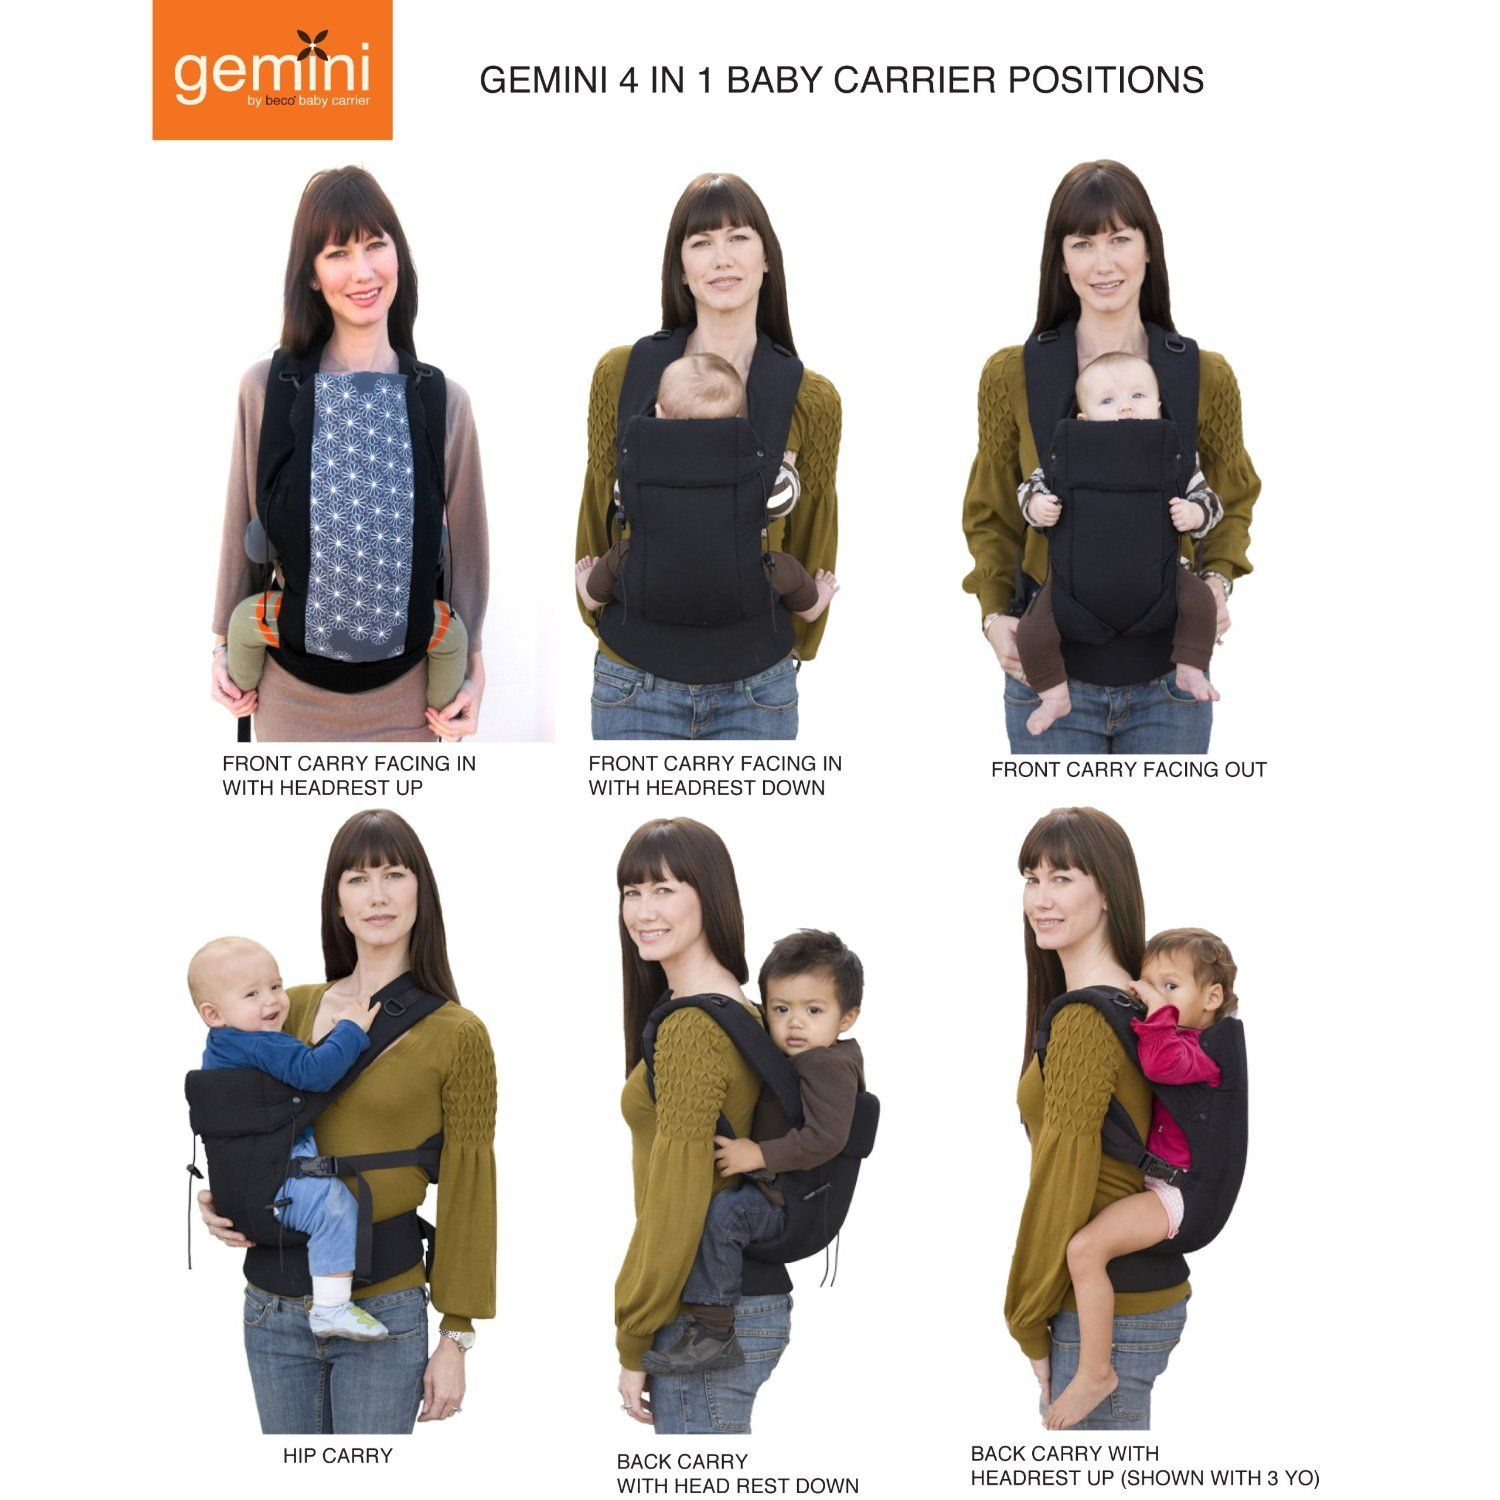 beco gemini carrier review